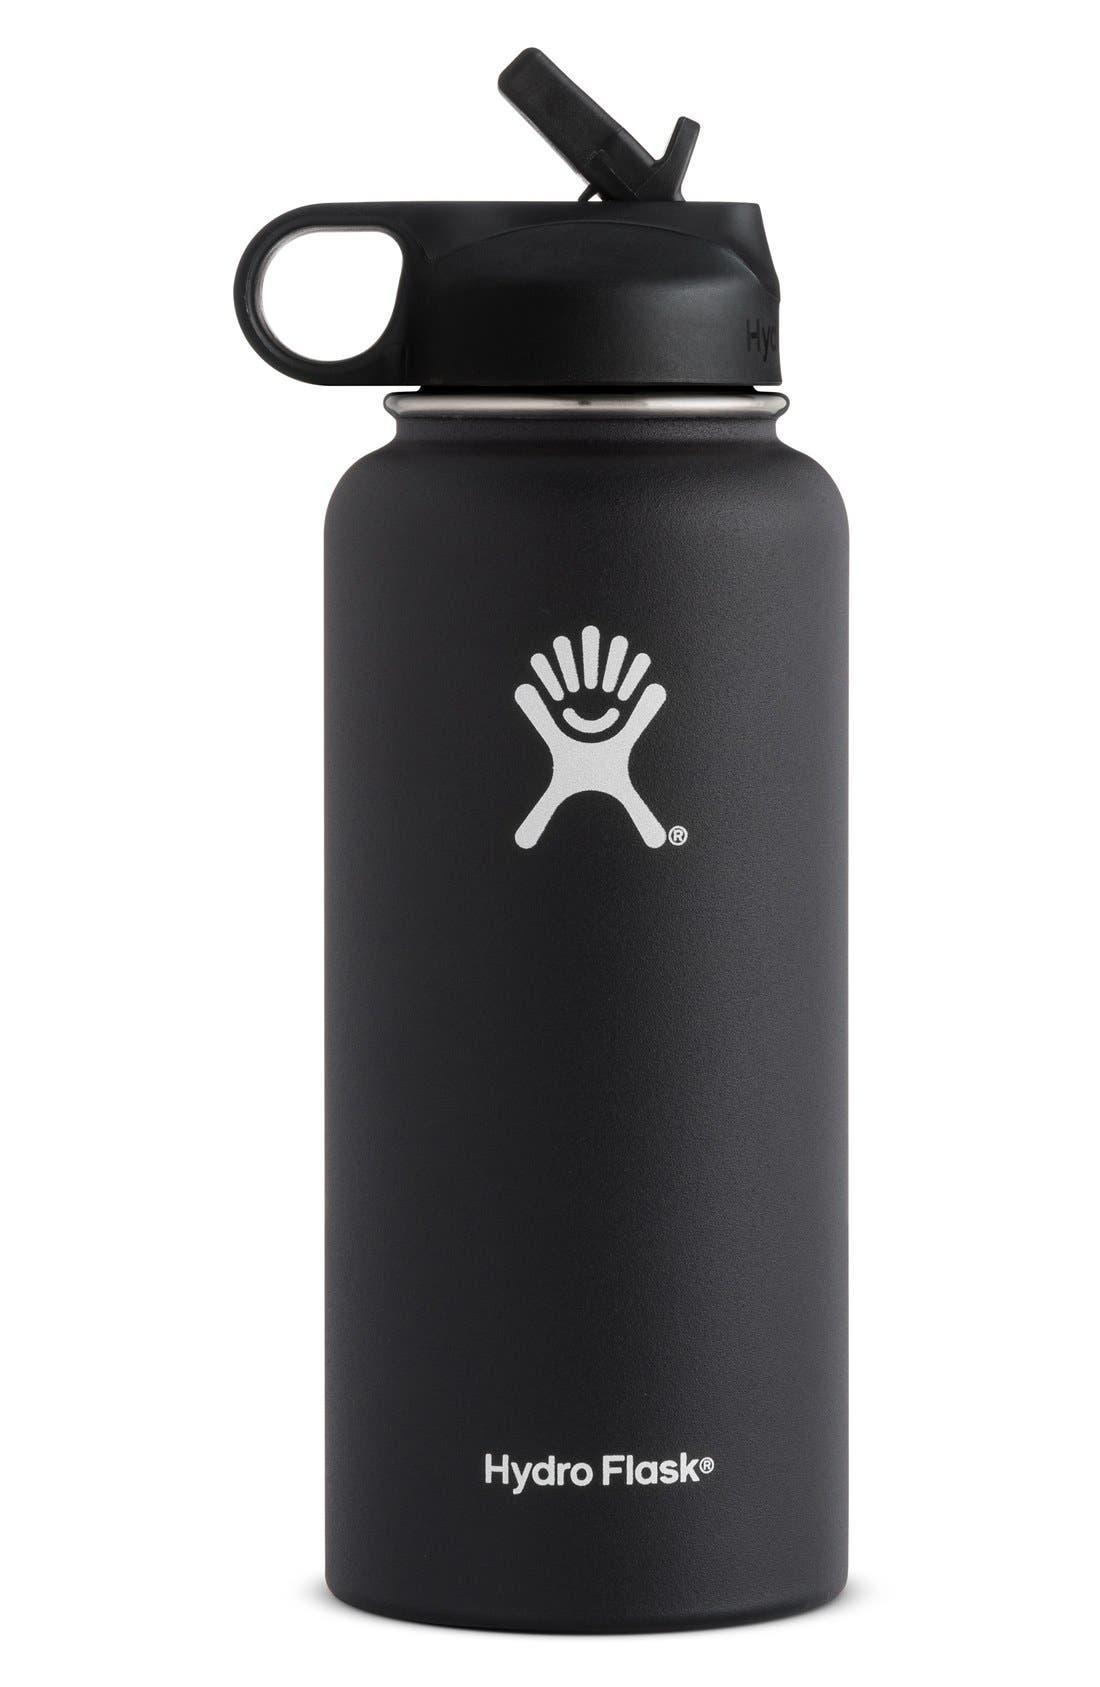 32-Ounce Wide Mouth Bottle with Straw Lid,                             Main thumbnail 1, color,                             BLACK